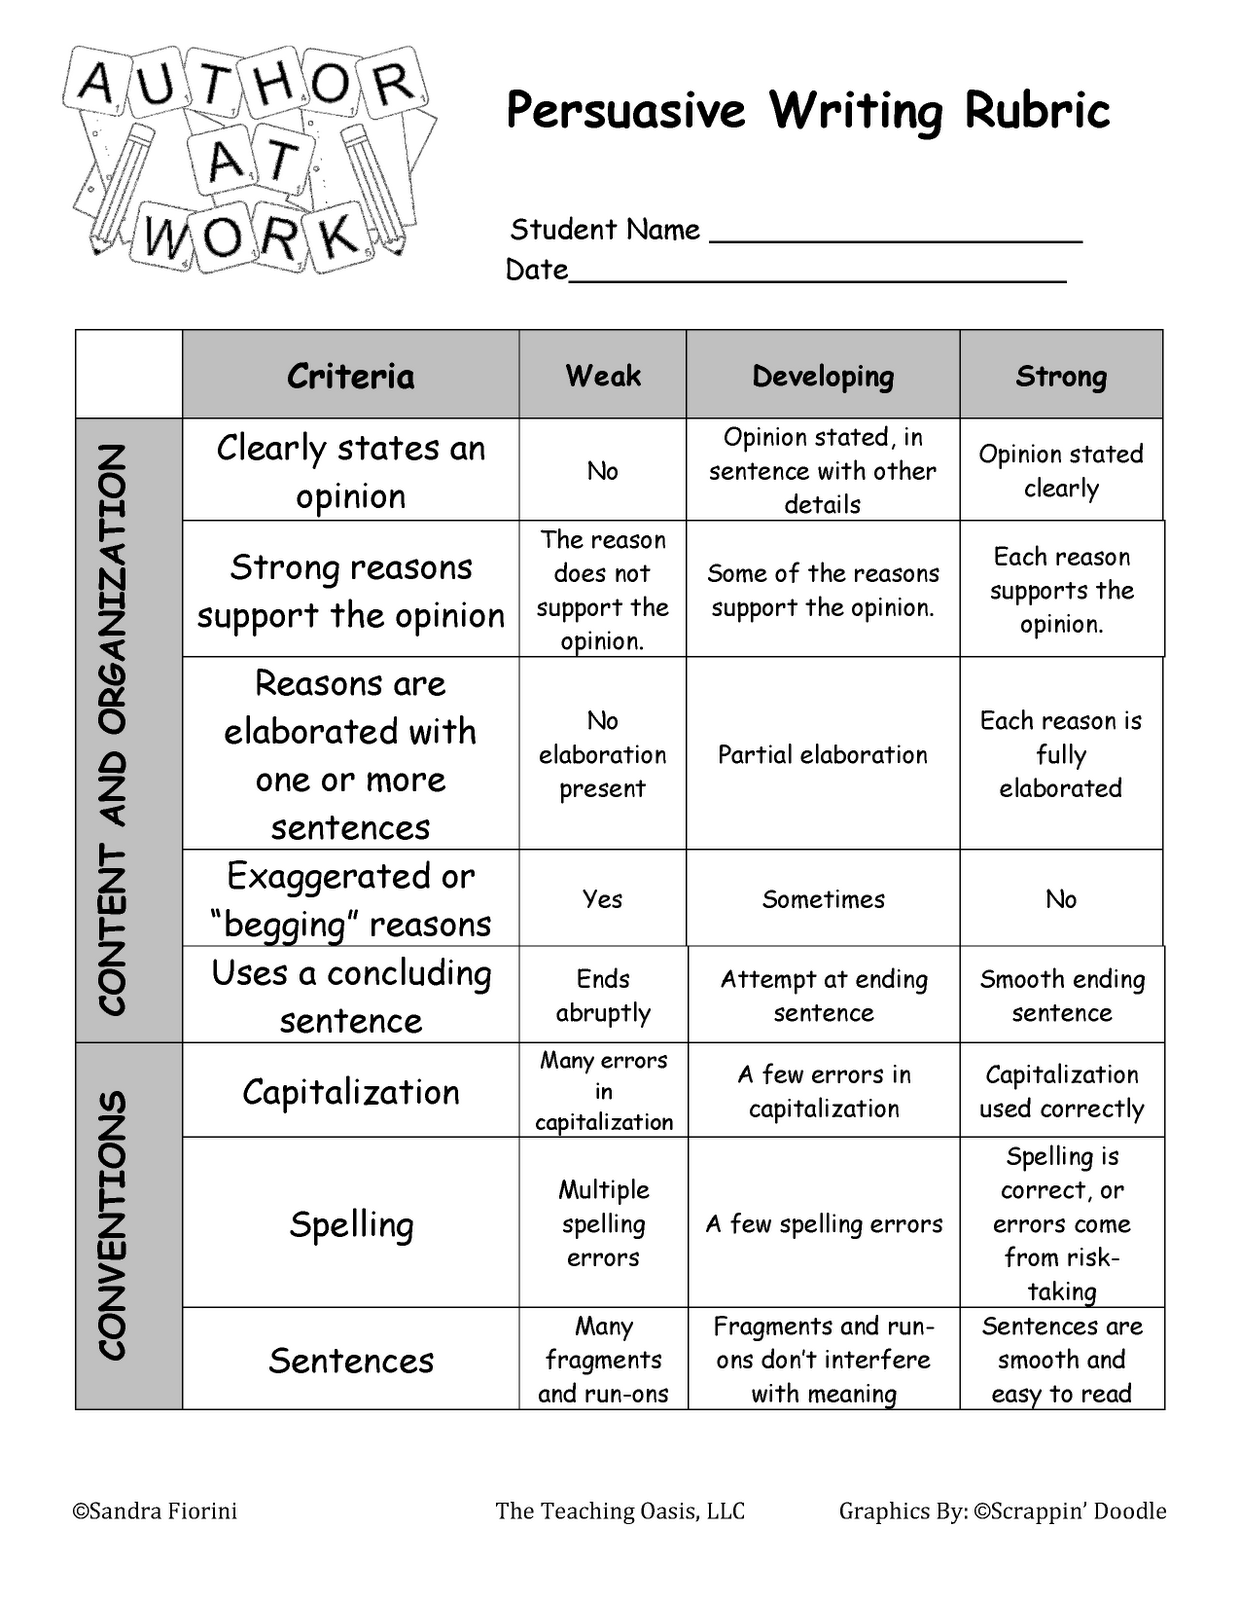 rubric for 5 paragraph persuasive essay Five paragraph essay scoring rubric to include an introductory and concluding paragraph on topics requiring persuasion or argument (without counter claims) this will not involve research citations two paragraphs containing separate clearly focused topic sentences that relate to the argument one.